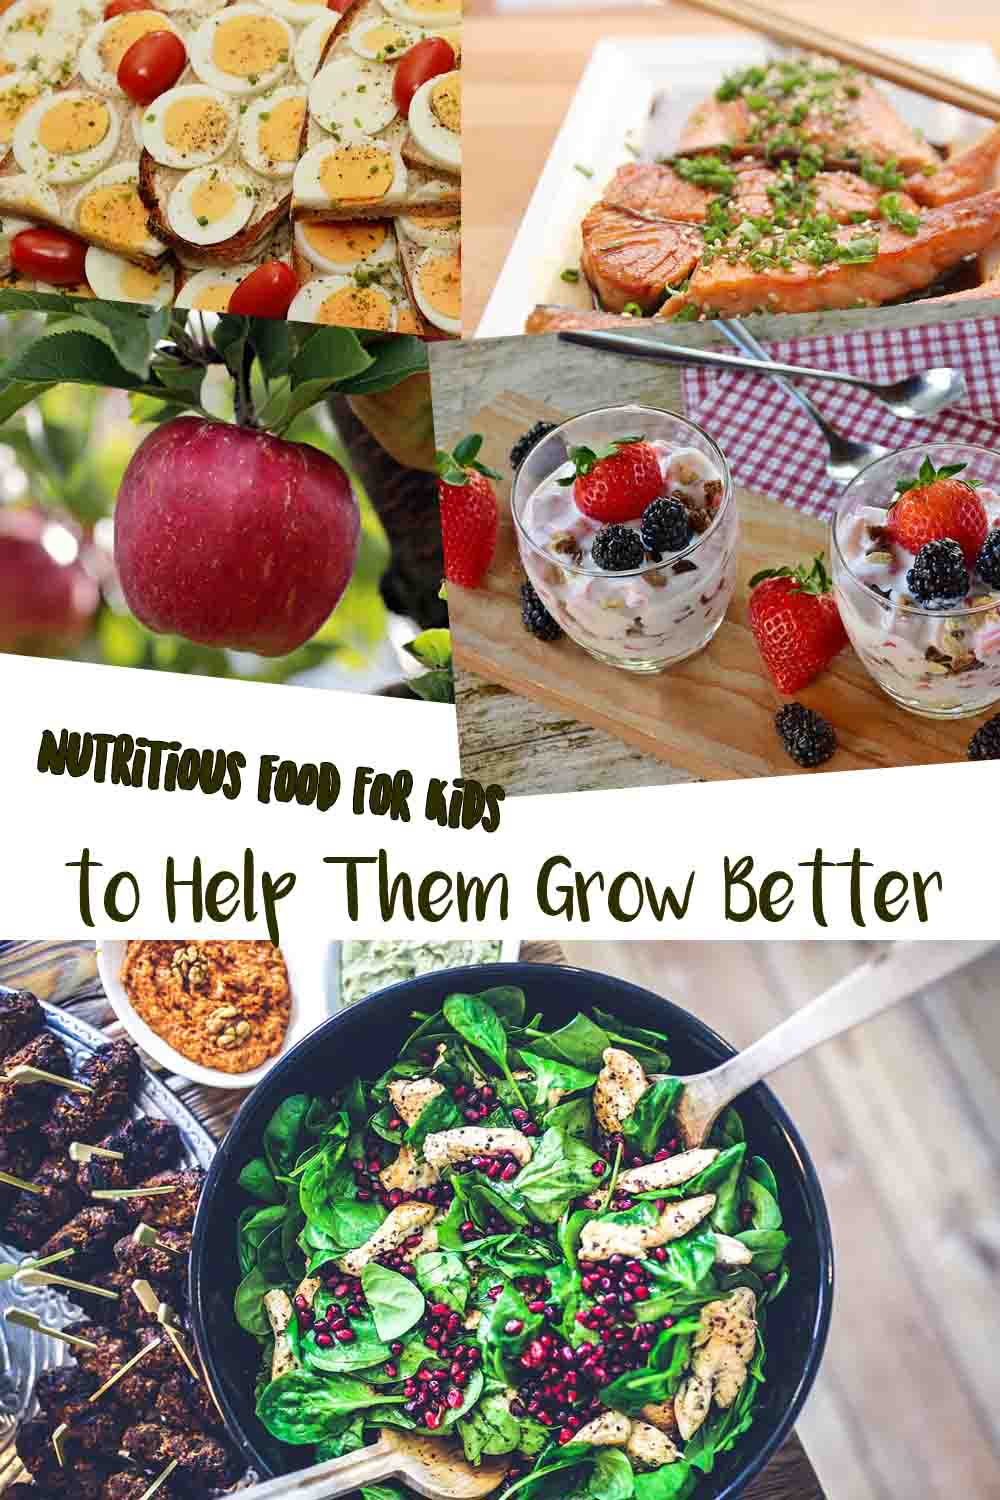 Nutritious Food for Kids to Help Them Grow Better